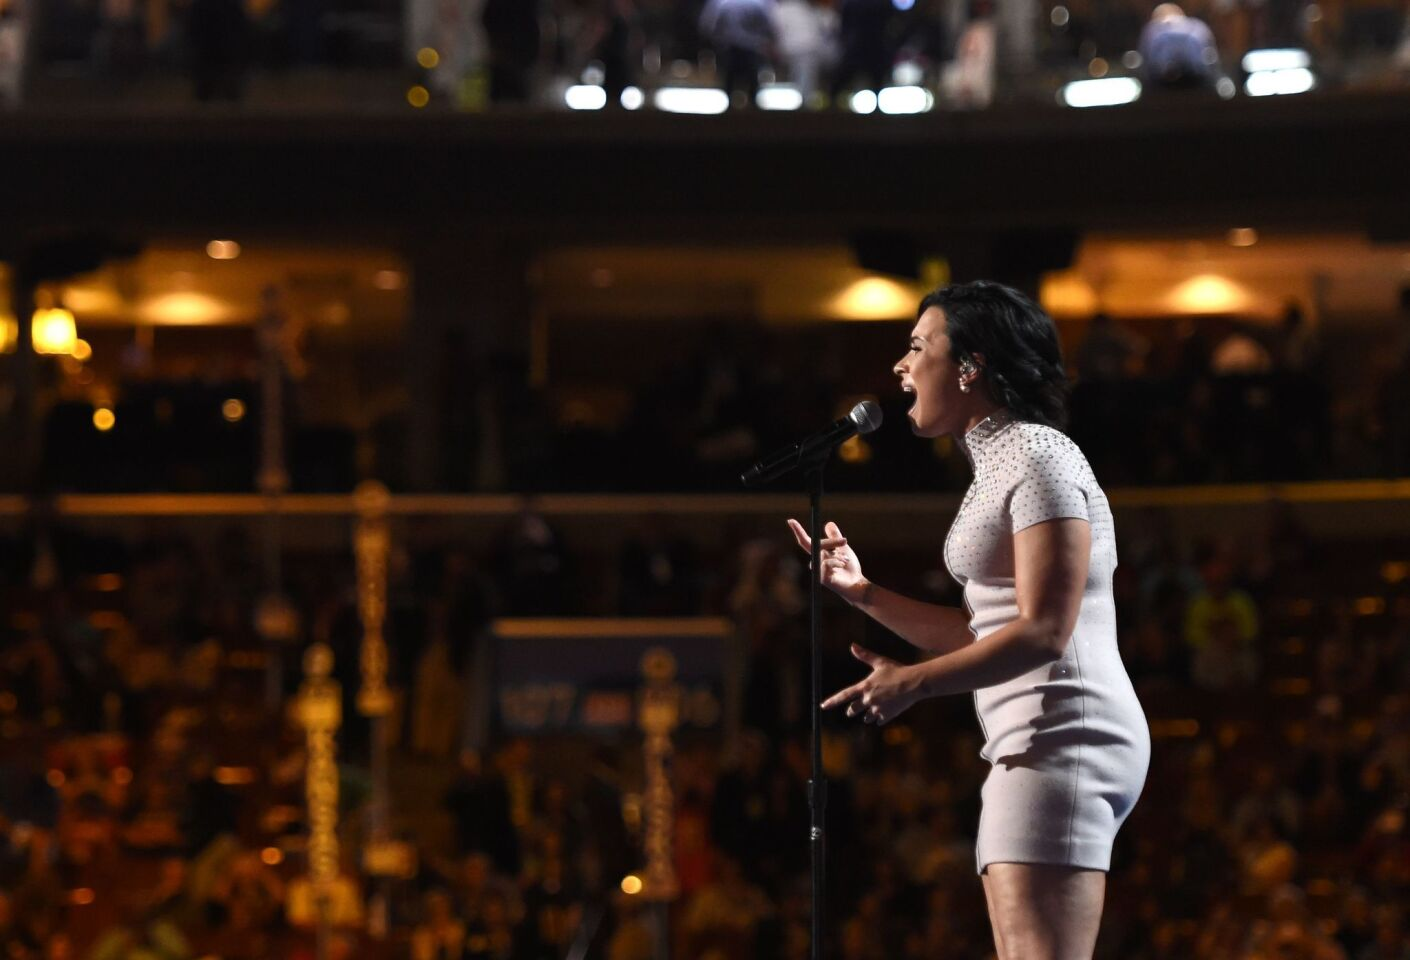 Singer Demi Lovato performs on Day 1 of the Democratic National Convention at the Wells Fargo Center on July 25, 2016 in Philadelphia, Pennsylvania.